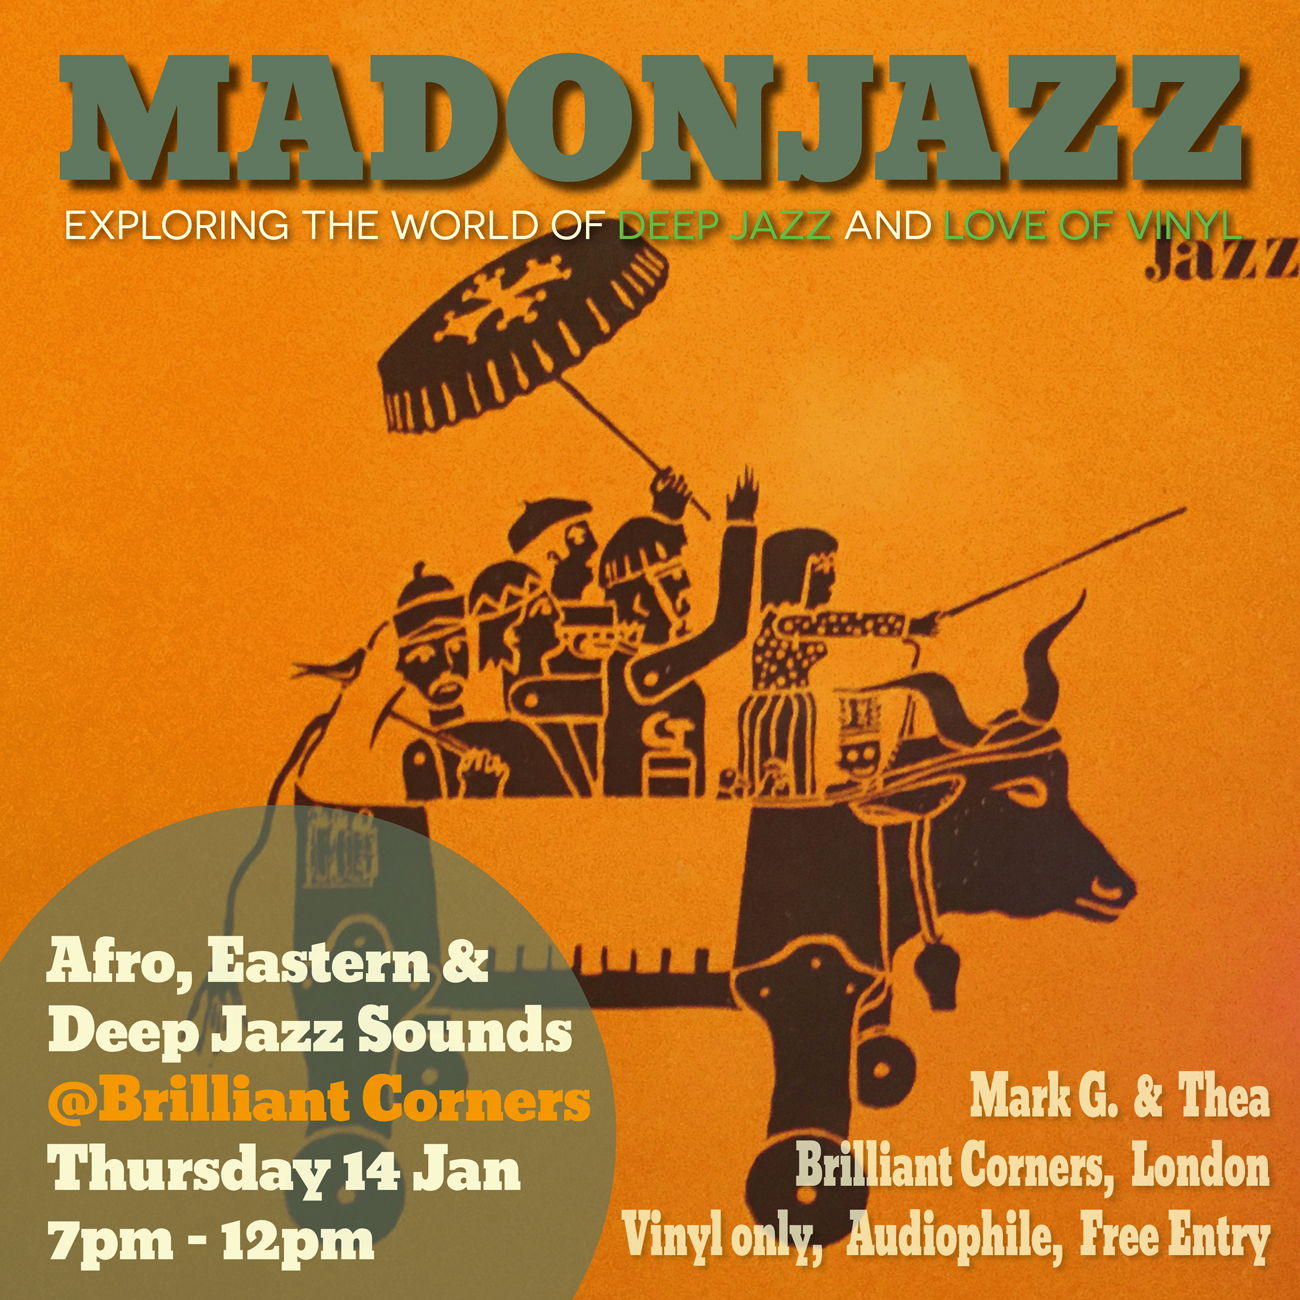 MADONJAZZ at Brilliant Corners London Thursday 14 January 2016